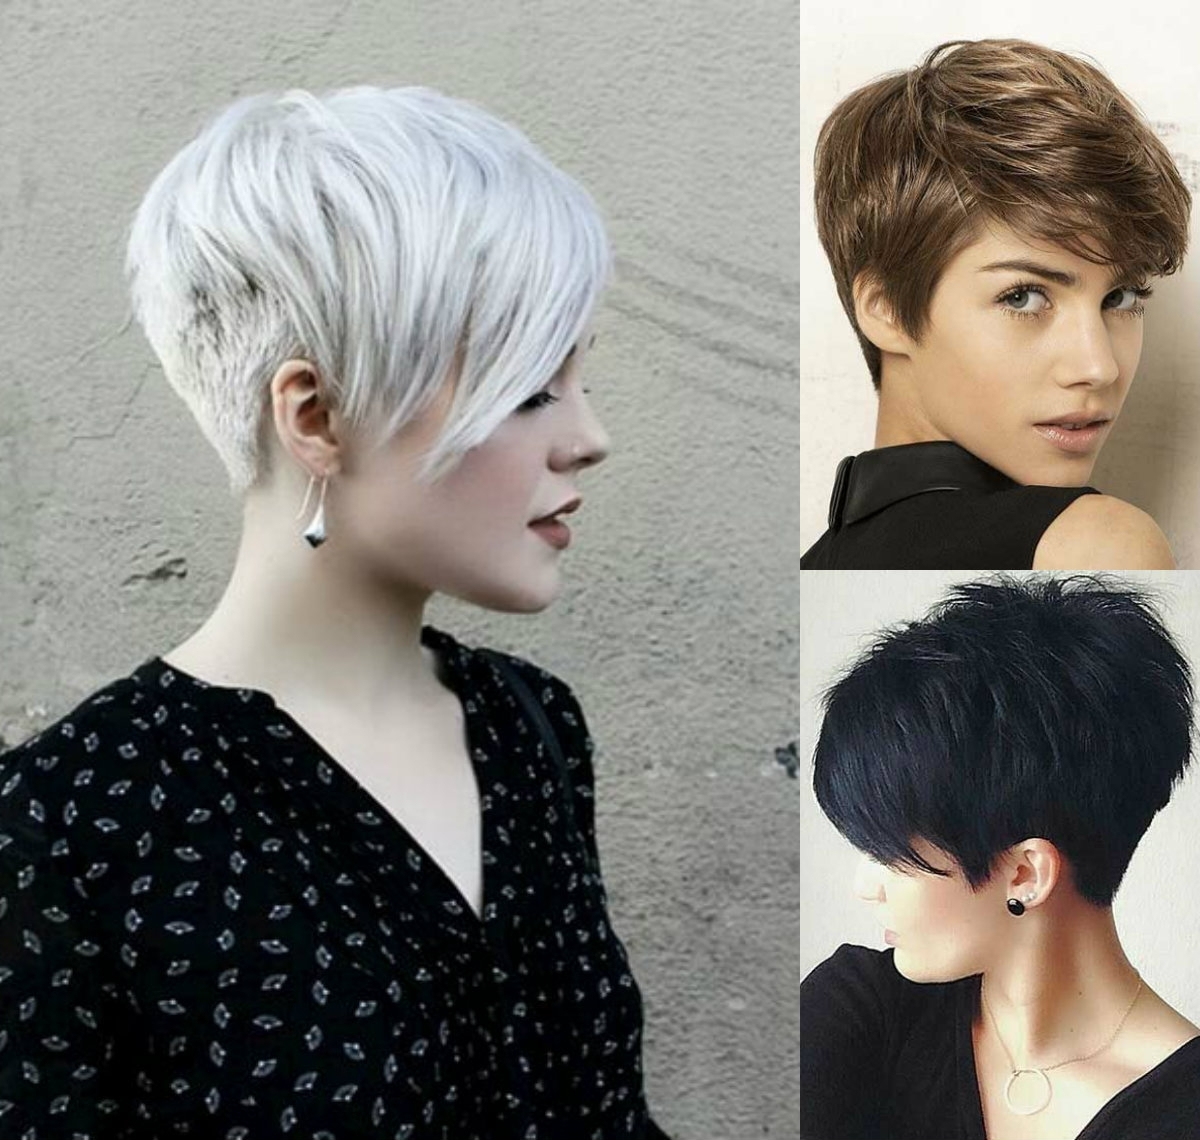 Vibrant Layered Pixie Haircuts 2017 | Hairdrome With Regard To Most Popular Textured Pixie Hairstyles (View 2 of 15)